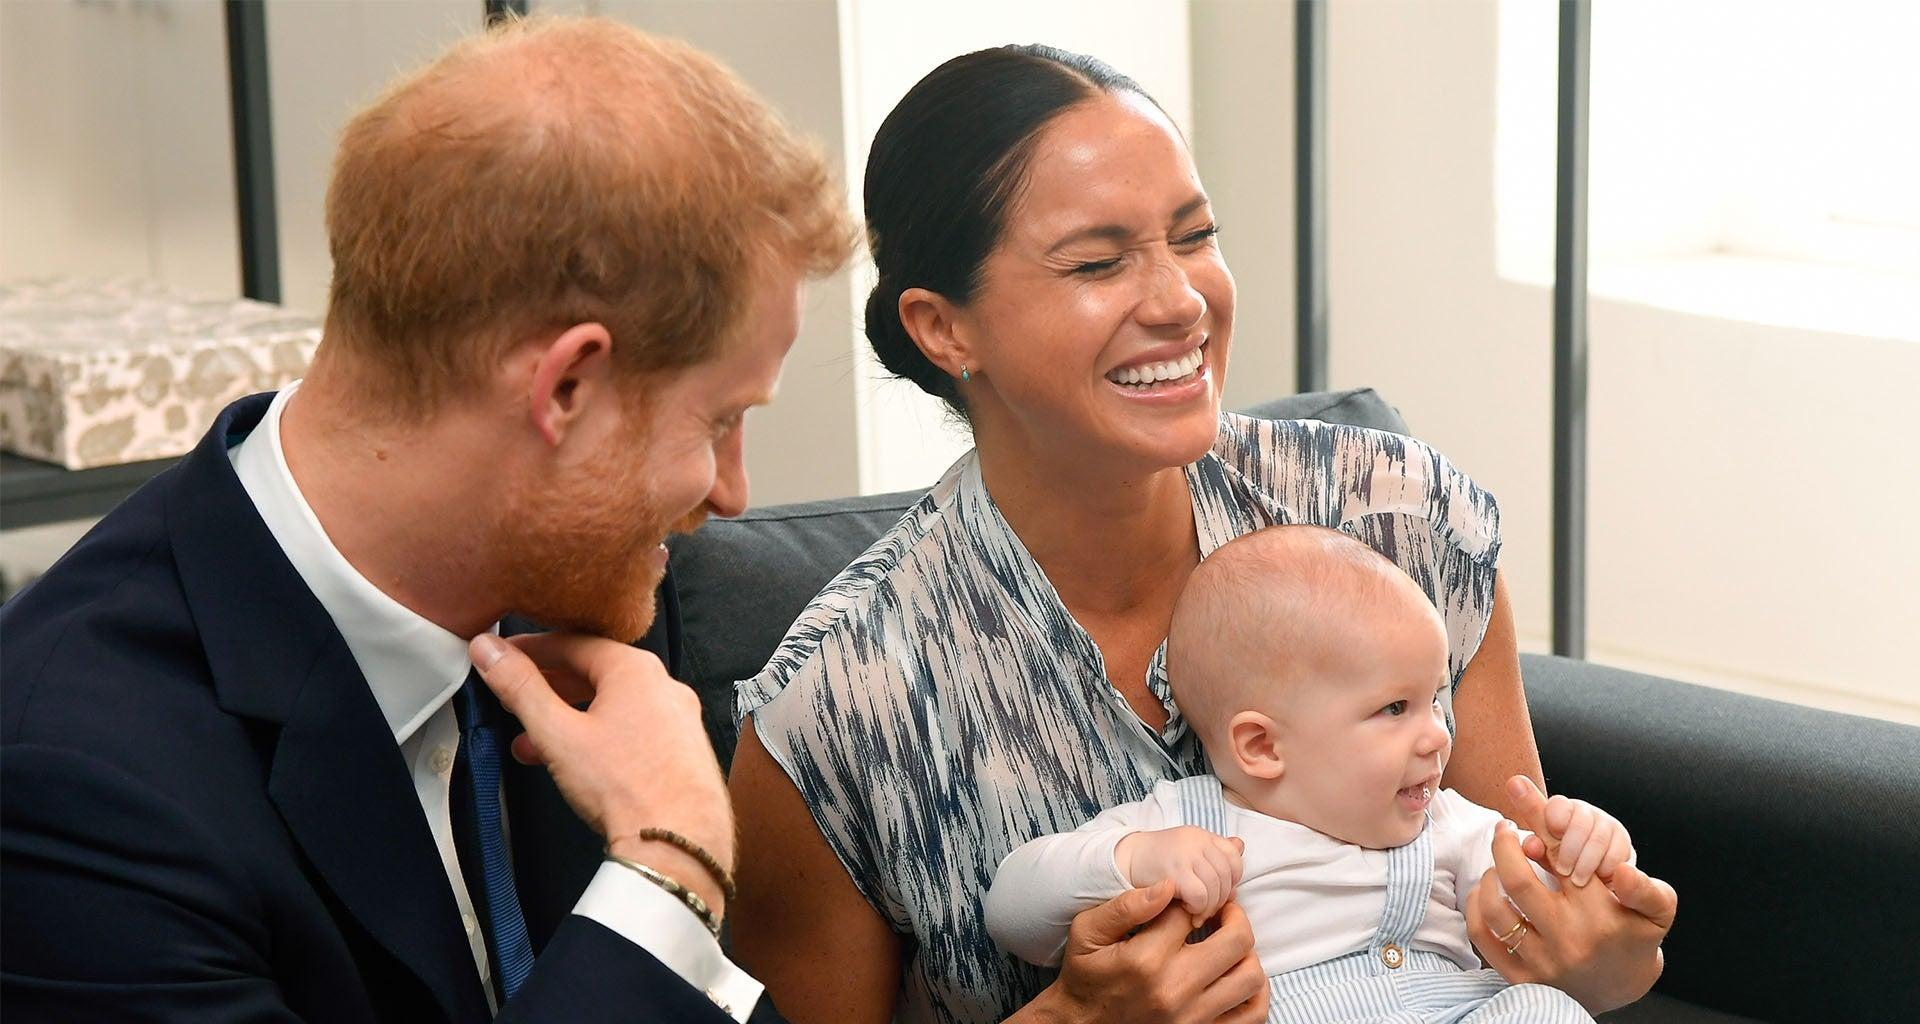 Meghan Markle Reads To Her And Prince Harry's Son Archie In Adorable And Rare Video!